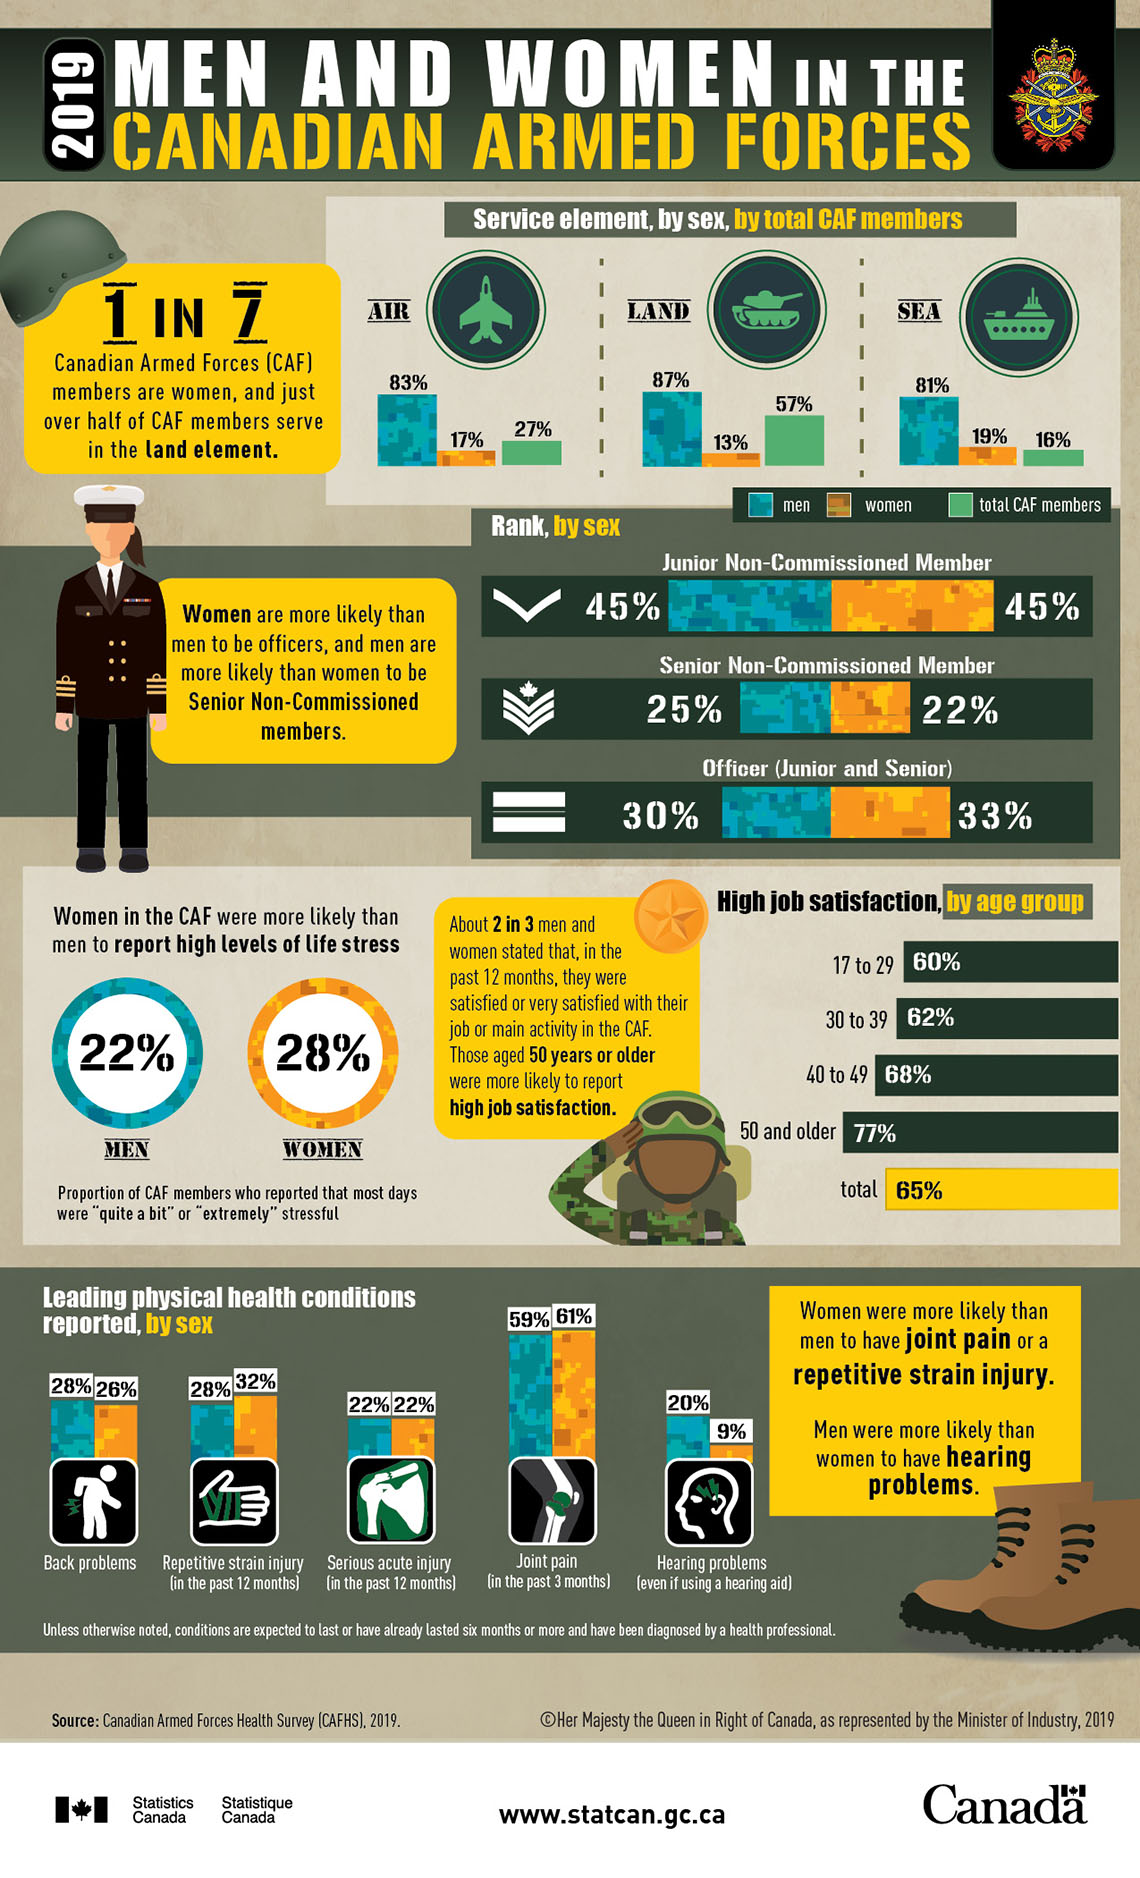 Infographic: Men and women in the Canadian Armed Forces, 2019